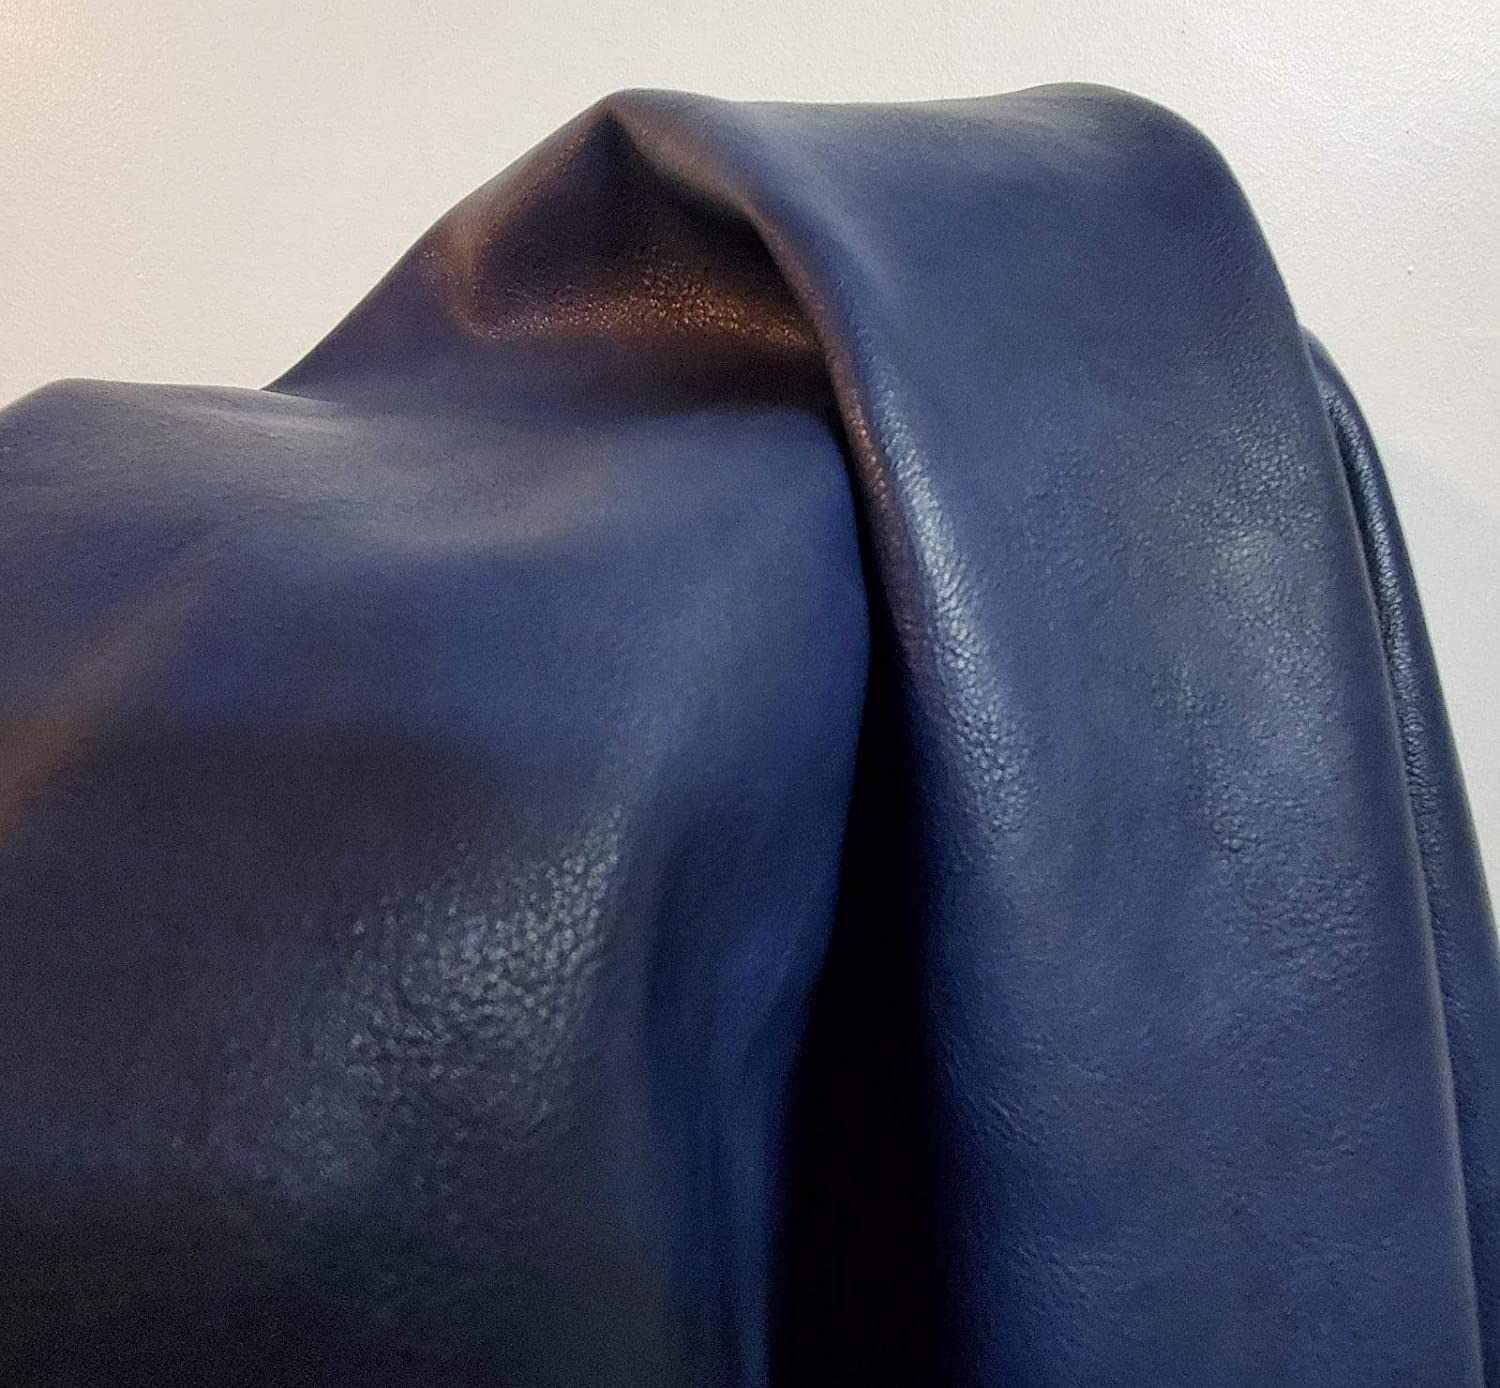 NAT Leathers | Navy Blue Soft Faux Vegan Leather PU {Peta Approved Vegan} | 1 Yard (36 inch Length x 54 inch Wide) Cut by The Yard | Synthetic Pleather Nappa 0.9 mm Smooth Vinyl Upholstery | 36